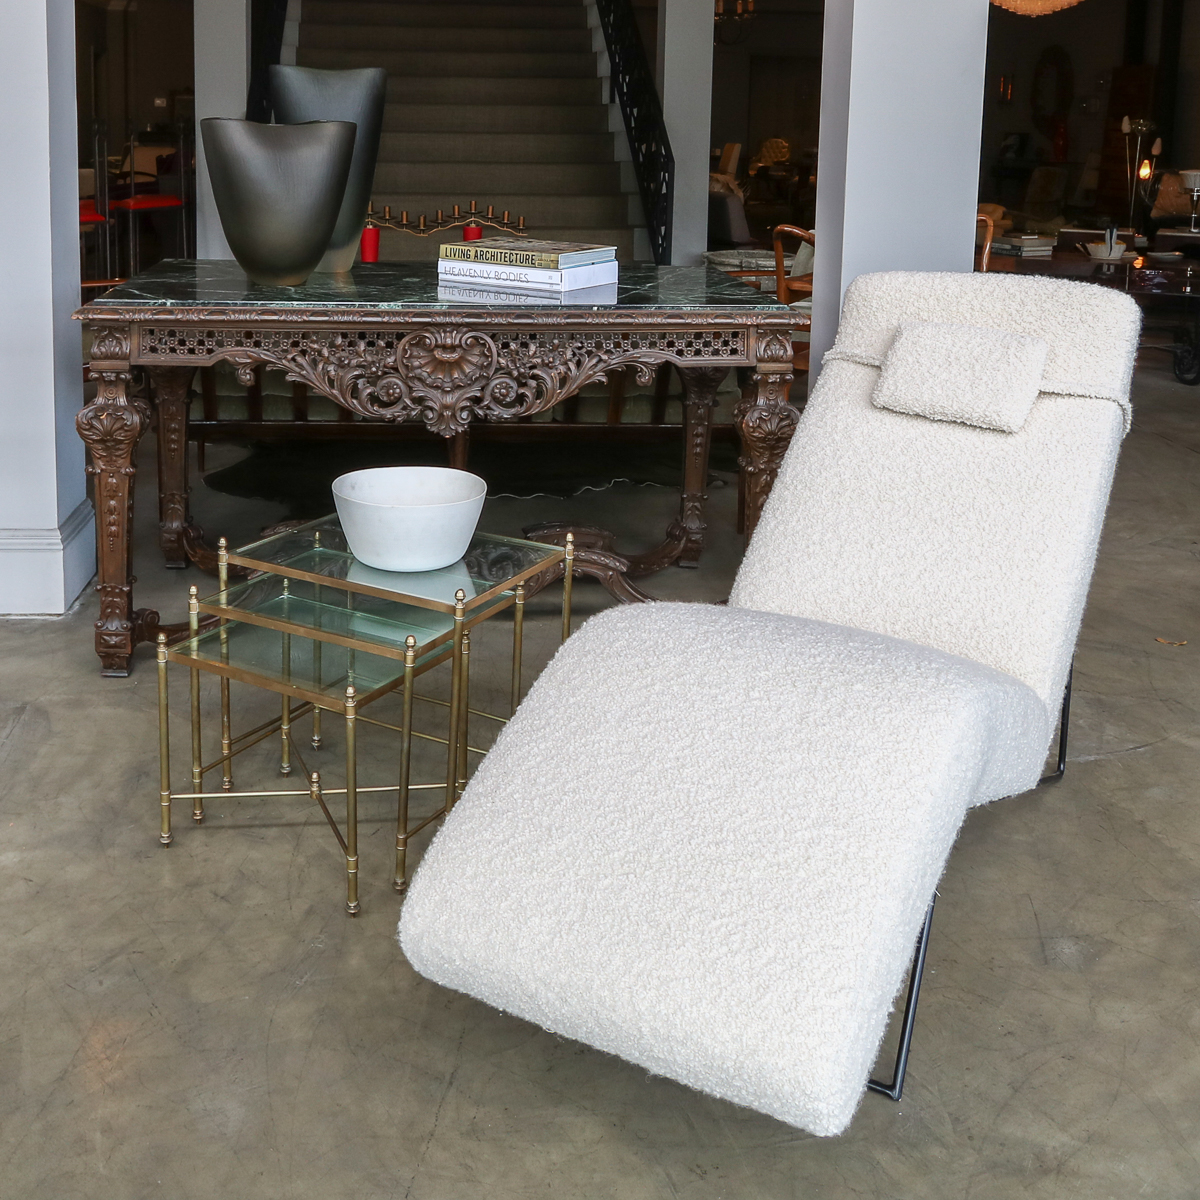 Our custom chaise with vintage and antique. #adessoimports #midcenturymodern #customfurniture #customdecor #customdesign #interiordesign #midcenturystyle #midcenturyfurniture #modernism #midcenturydecor #midcenturyhome #vintagefurniture #homeinspiration #homeinspo #homedecorpic.twitter.com/D61UvS2bxx